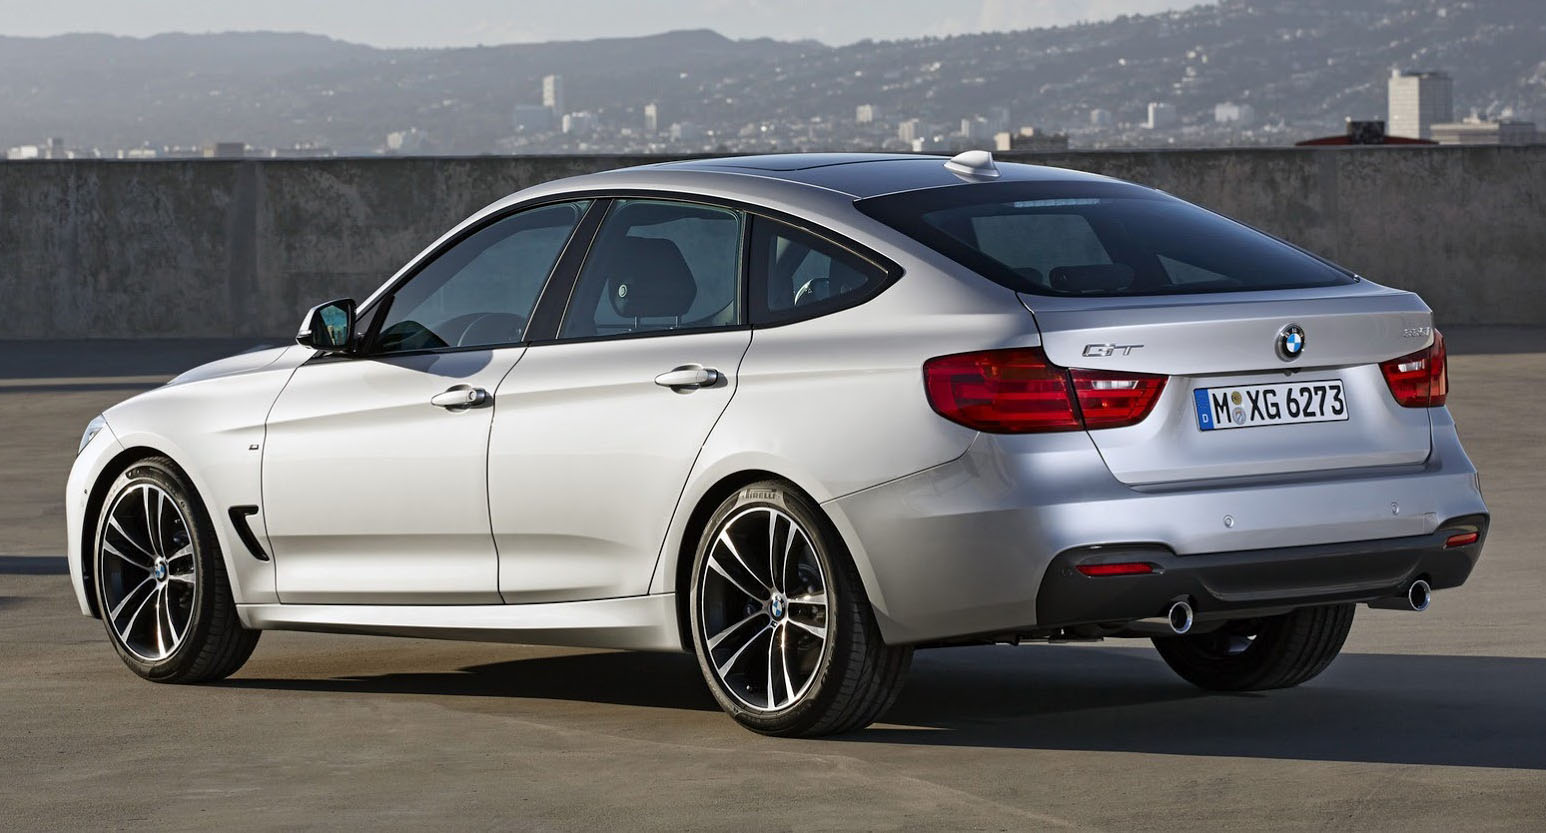 The 2014 BMW 3 Series GT